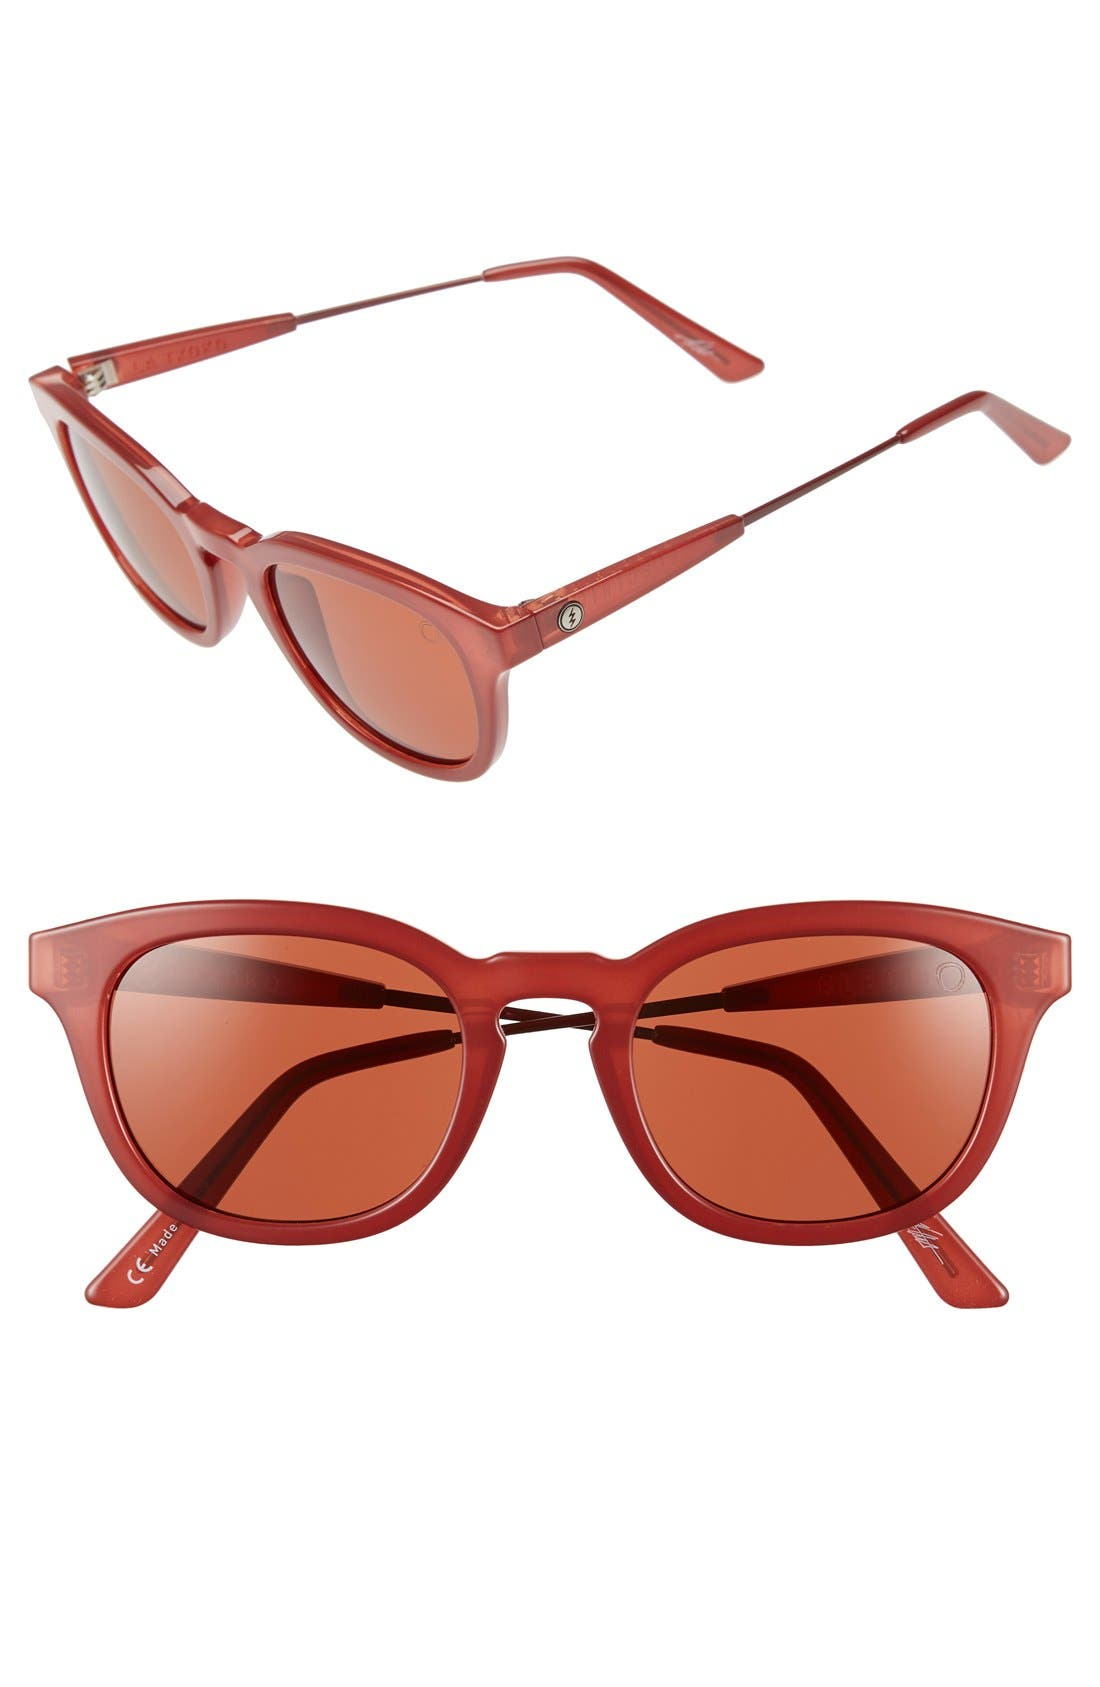 ELECTRIC 'La Txoko' 51mm Retro Sunglasses